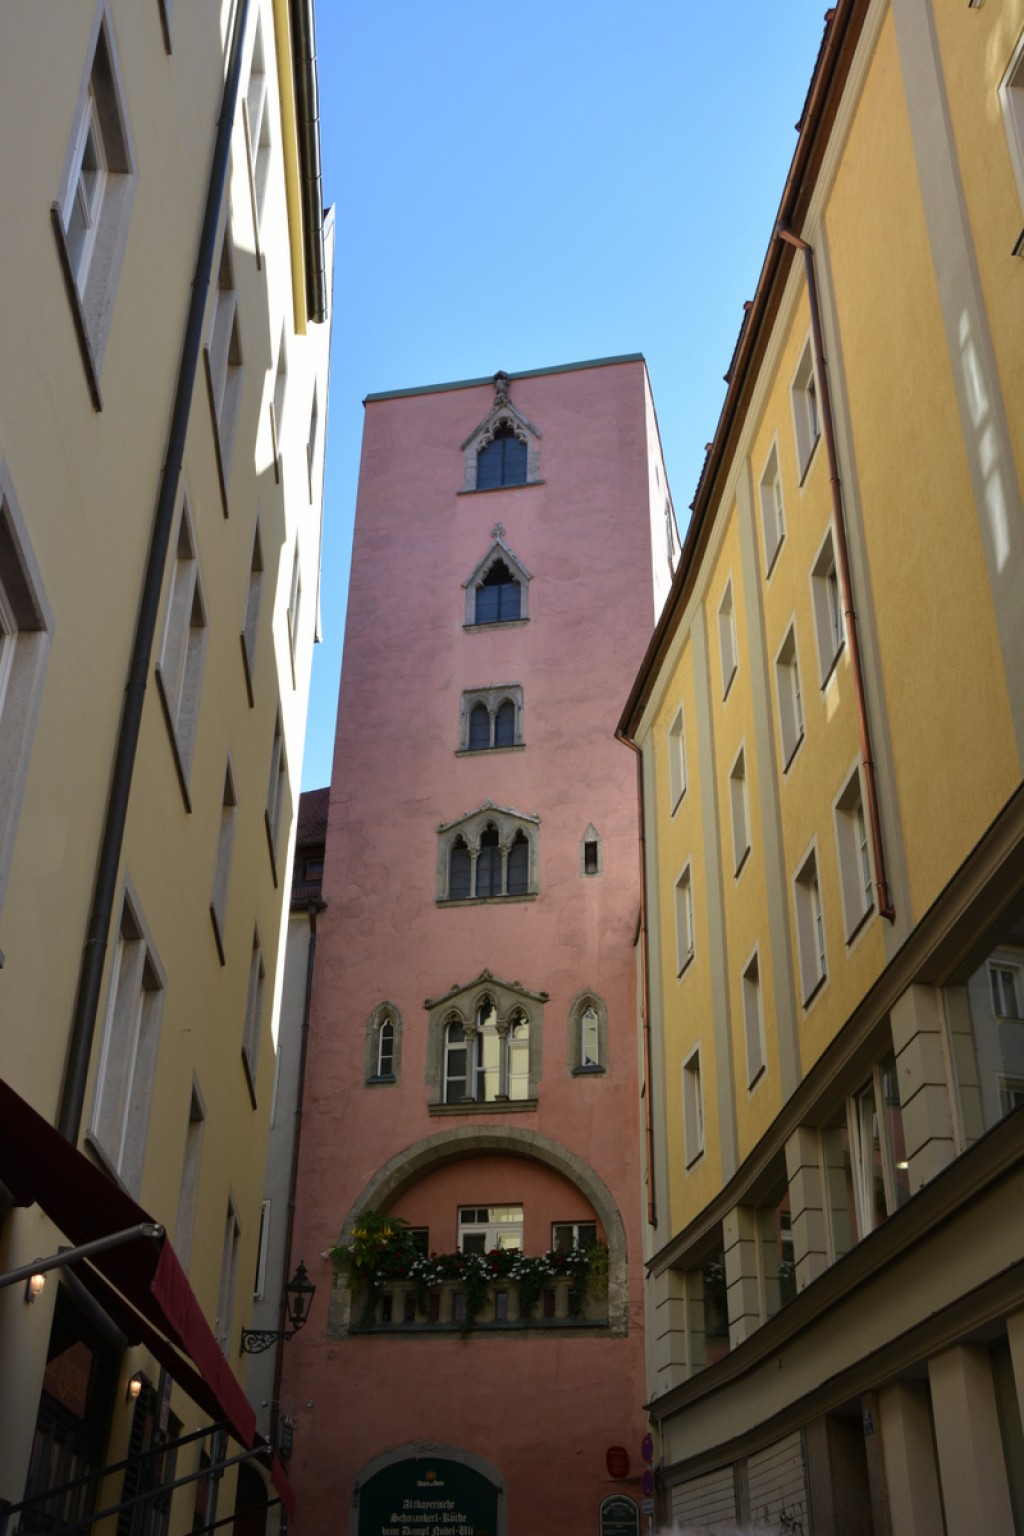 We stopped at Regensburg on our way to Rothenberg. It was a very pleasant city to walk around and shop in, and wished we'd had more time there.  There's lots of cruise boat tourists, so being there off peak makes for a much more enjoyable tour.